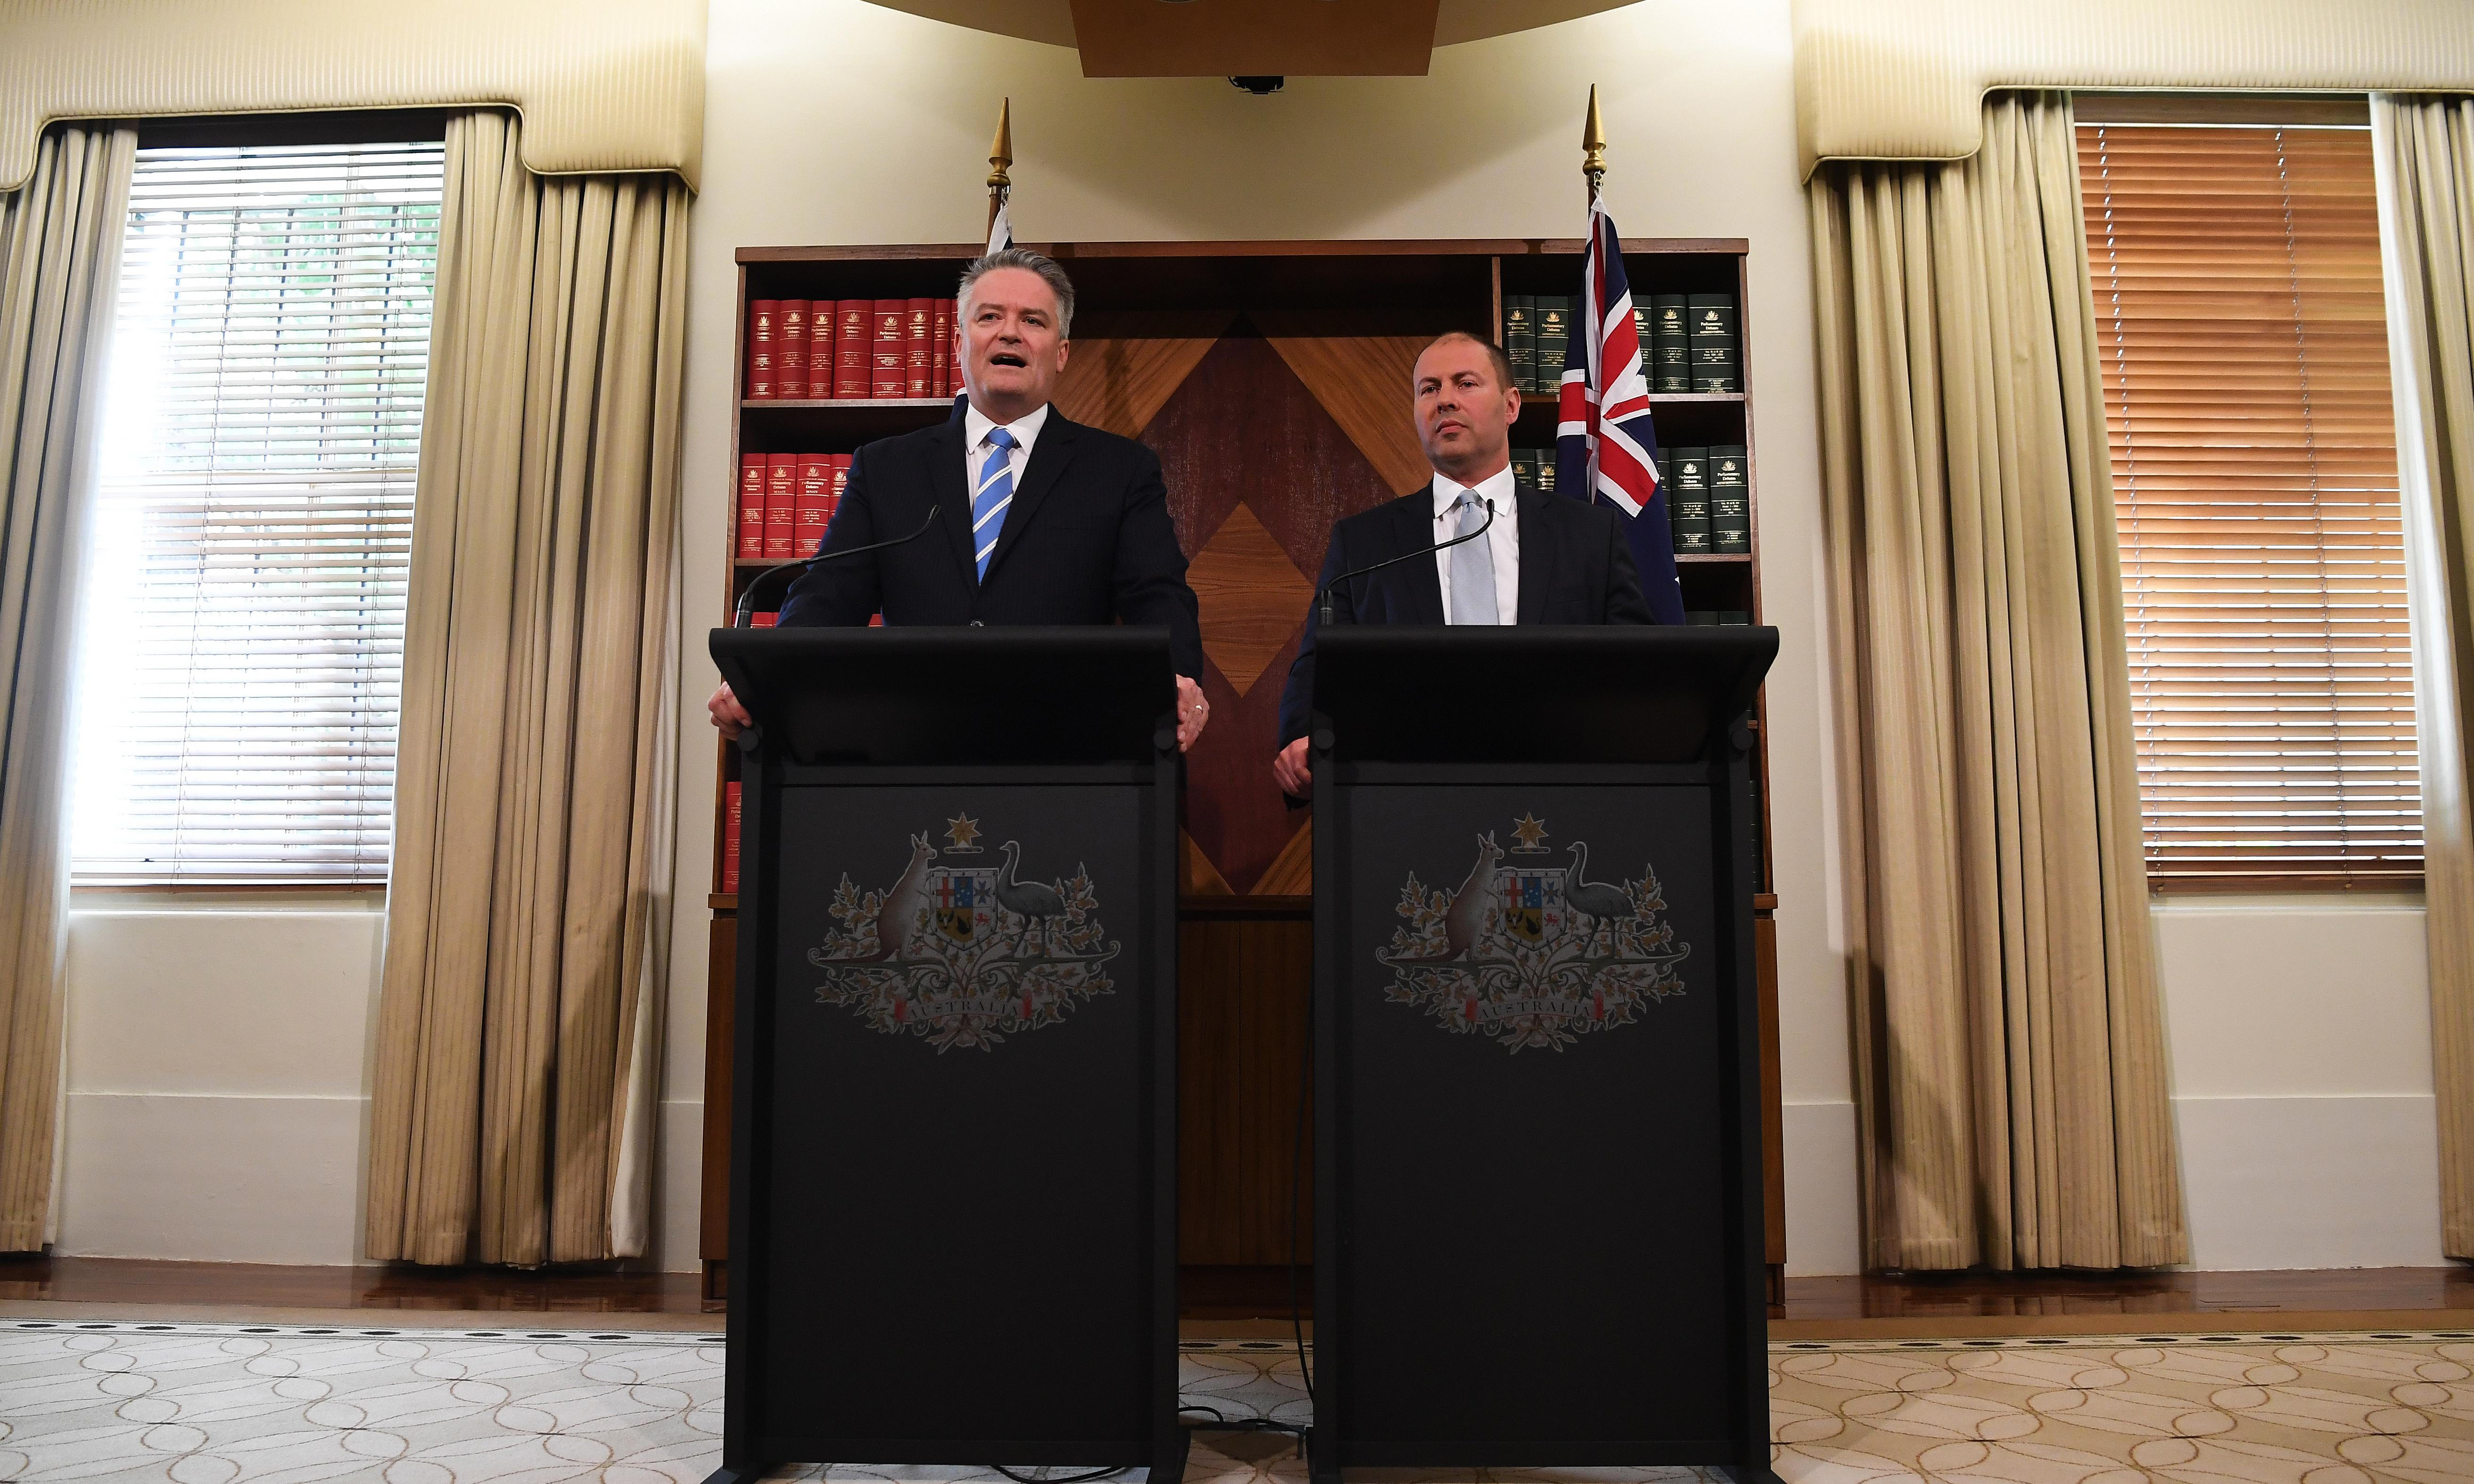 Coalition plans fresh $1.5bn public service cuts to fund election promises